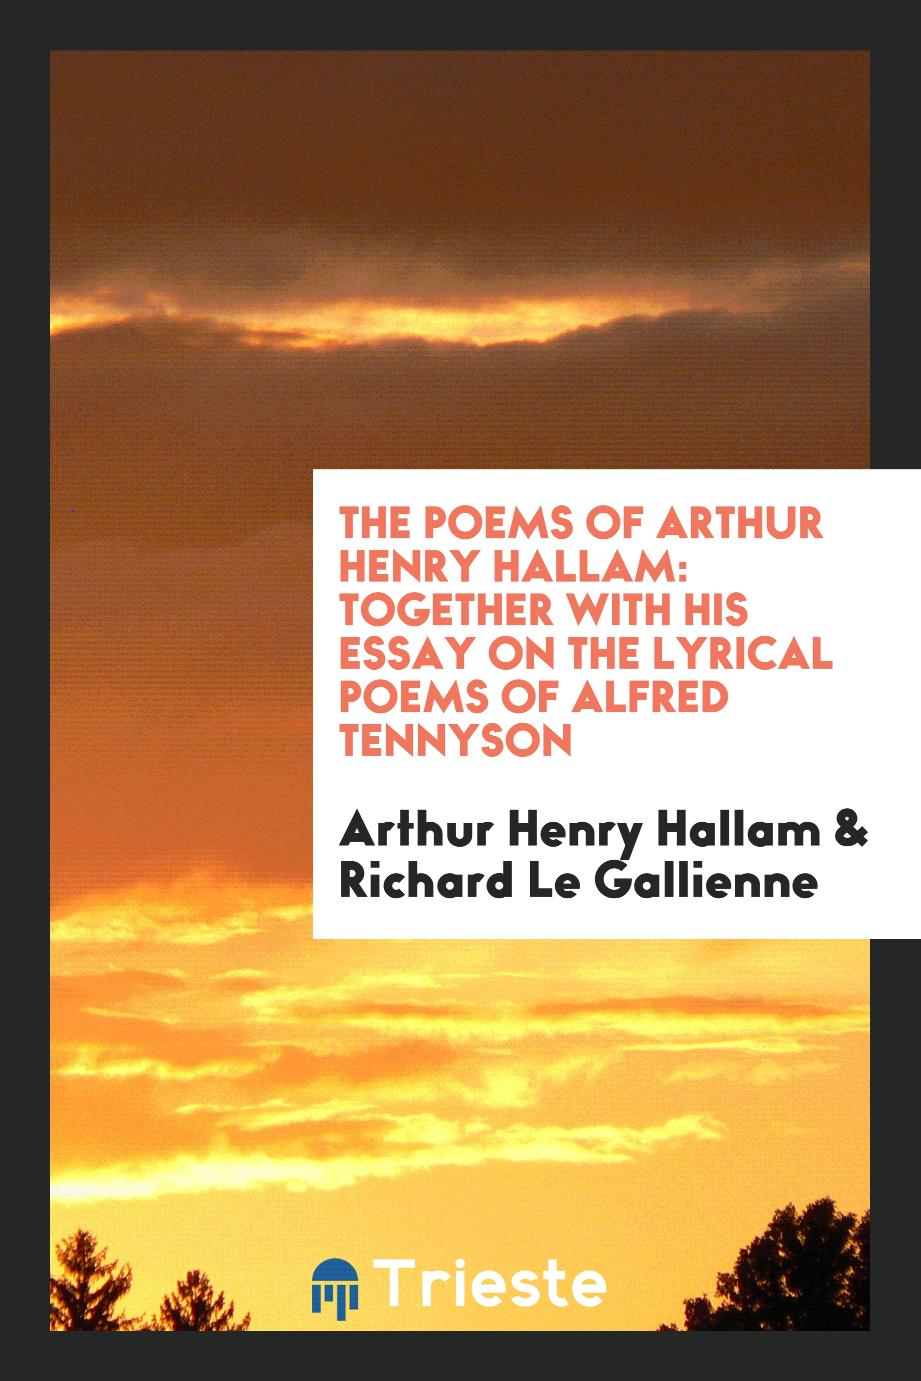 The poems of Arthur Henry Hallam: together with his essay on the lyrical poems of Alfred Tennyson